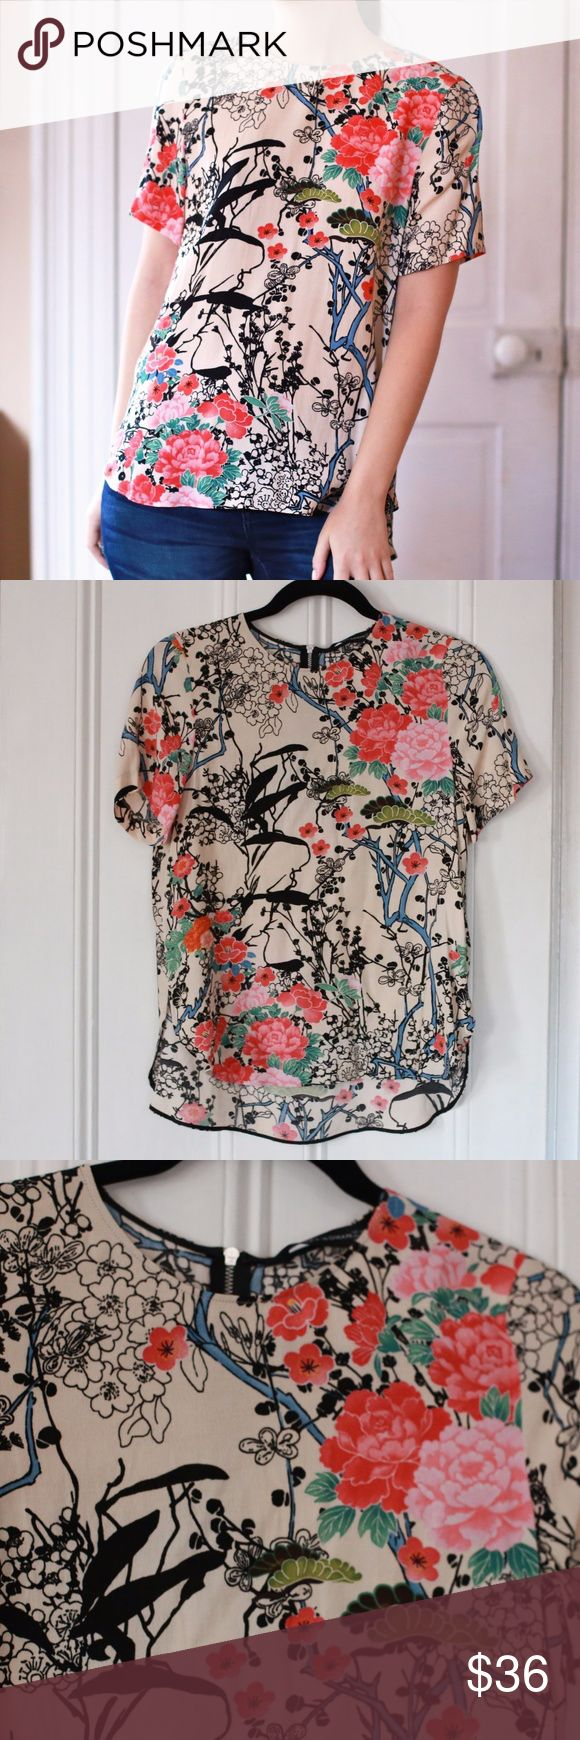 """Zara Floral Graphic Short Sleeve Blouse Top A lovely graphic floral print top from Zara Woman. The material is like a crepe and 100% viscose. I wore this only once (briefly for a photoshoot). The design has black and white flowers and some bigger pink ones over a cream base-- reminiscent of a Japanese floral print kimono. Zips up behind the neck. About 24"""" in length and 17"""" from armpit to armpit. Zara Tops Blouses"""